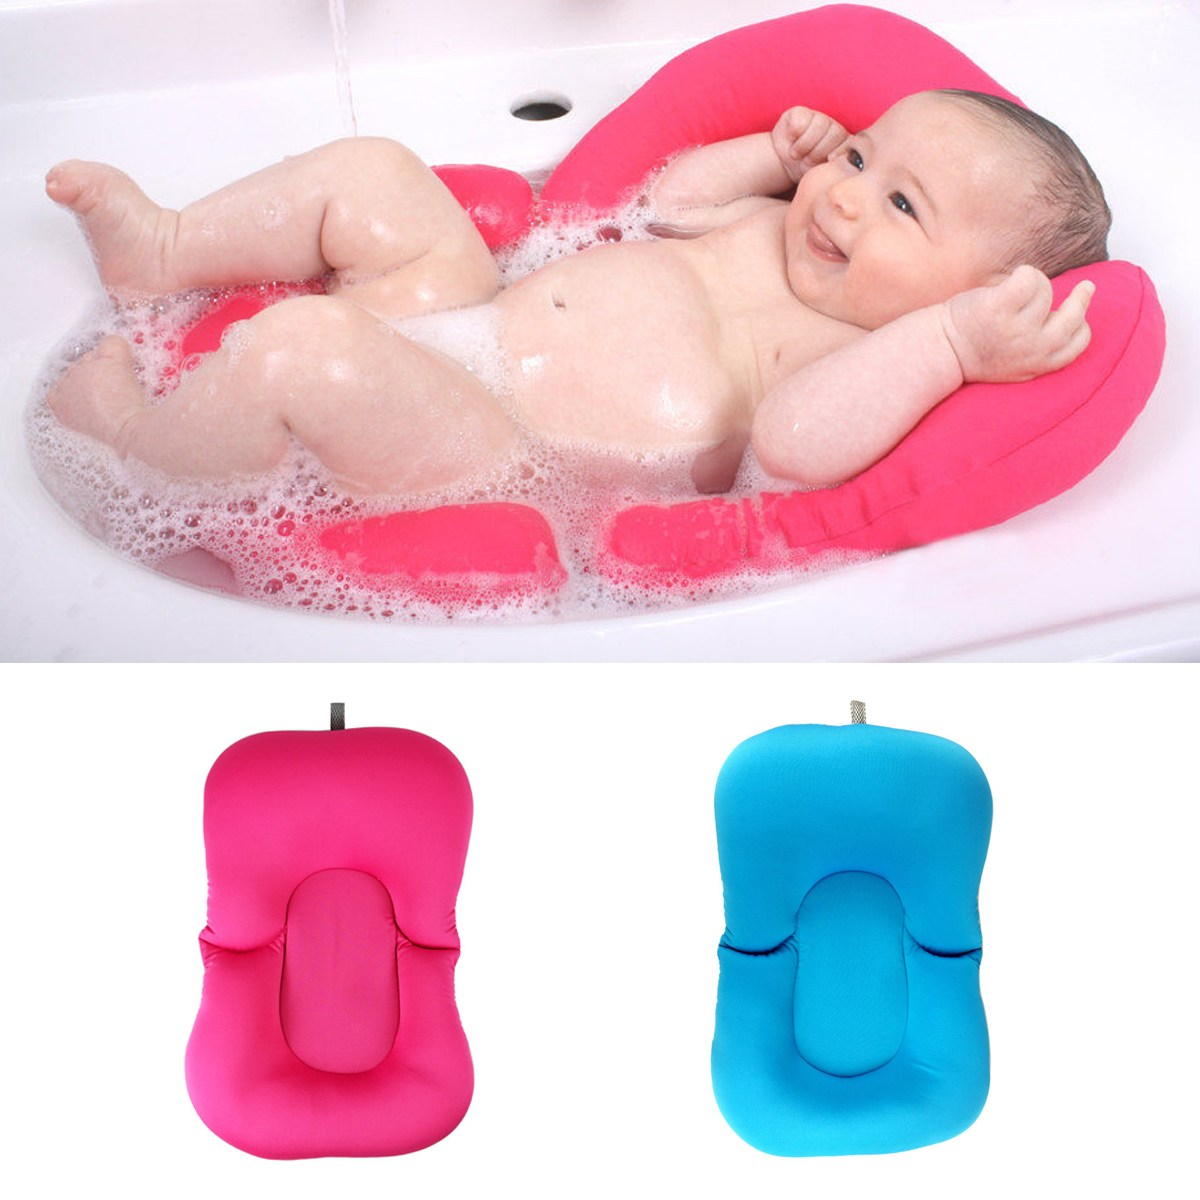 online buy wholesale baby lounger from china baby lounger  - infant newborn baby bath tub pillow pad lounger air cushion floating softseat bathtub support(